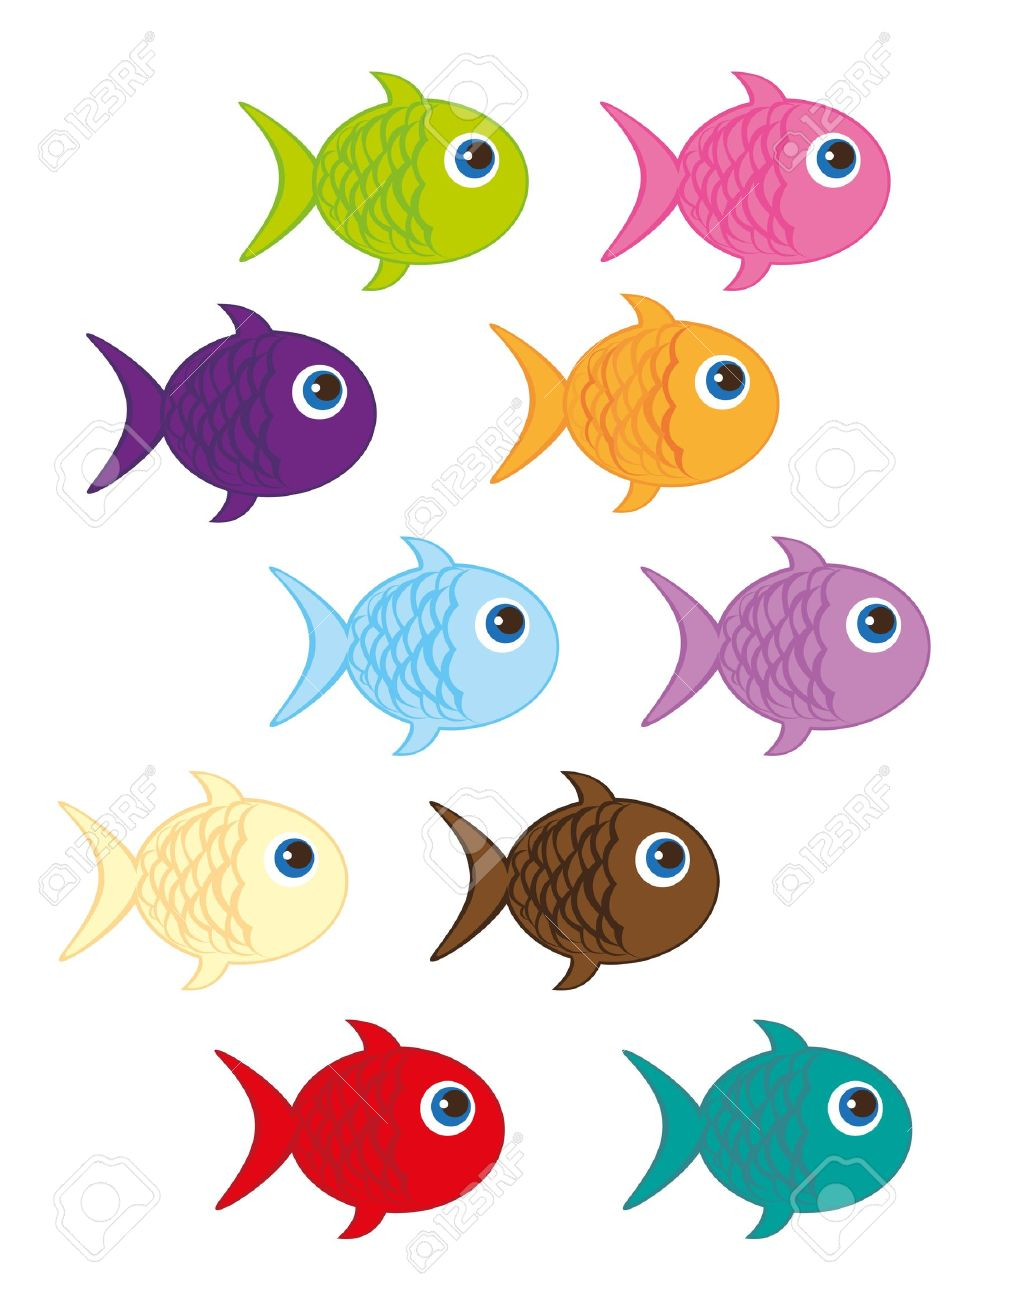 Uncategorized Cute Fish Cartoon cute fish cartoon isolated over white background vector royalty stock 10790198